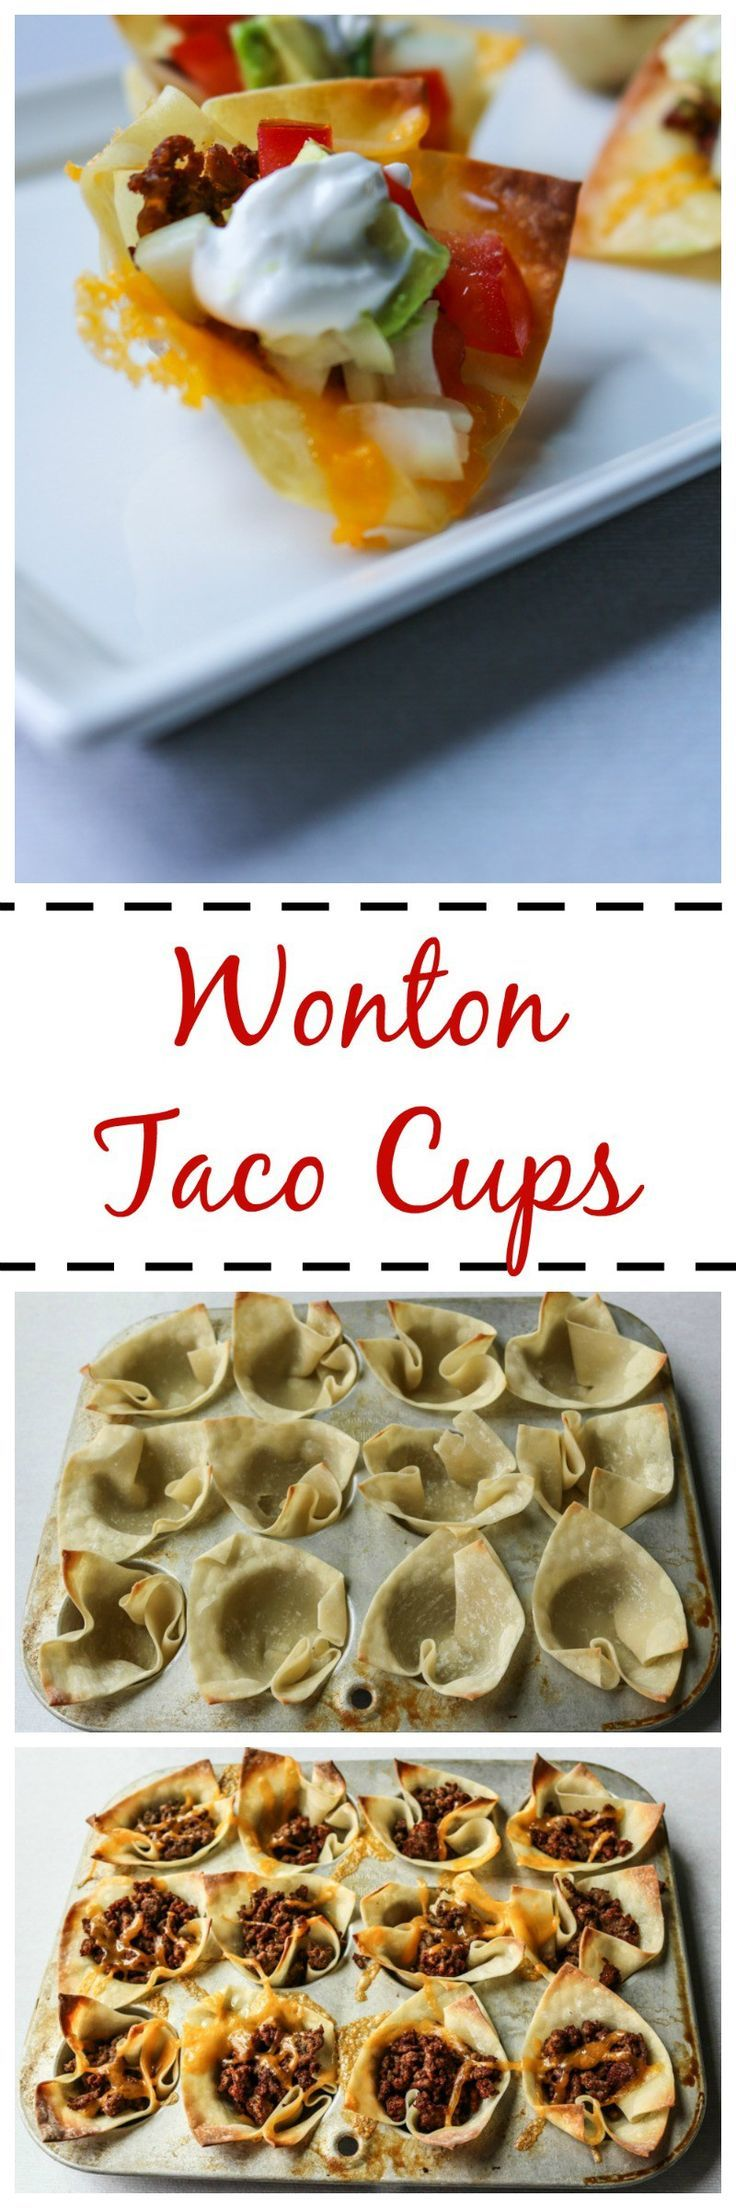 Wonton Taco Cups: Wonton wrappers are baked into little cups and then stuffed with taco meat and cheese and topped like any taco. A perfect party treat. Plus a round-up of recipes perfect for Football Viewing!